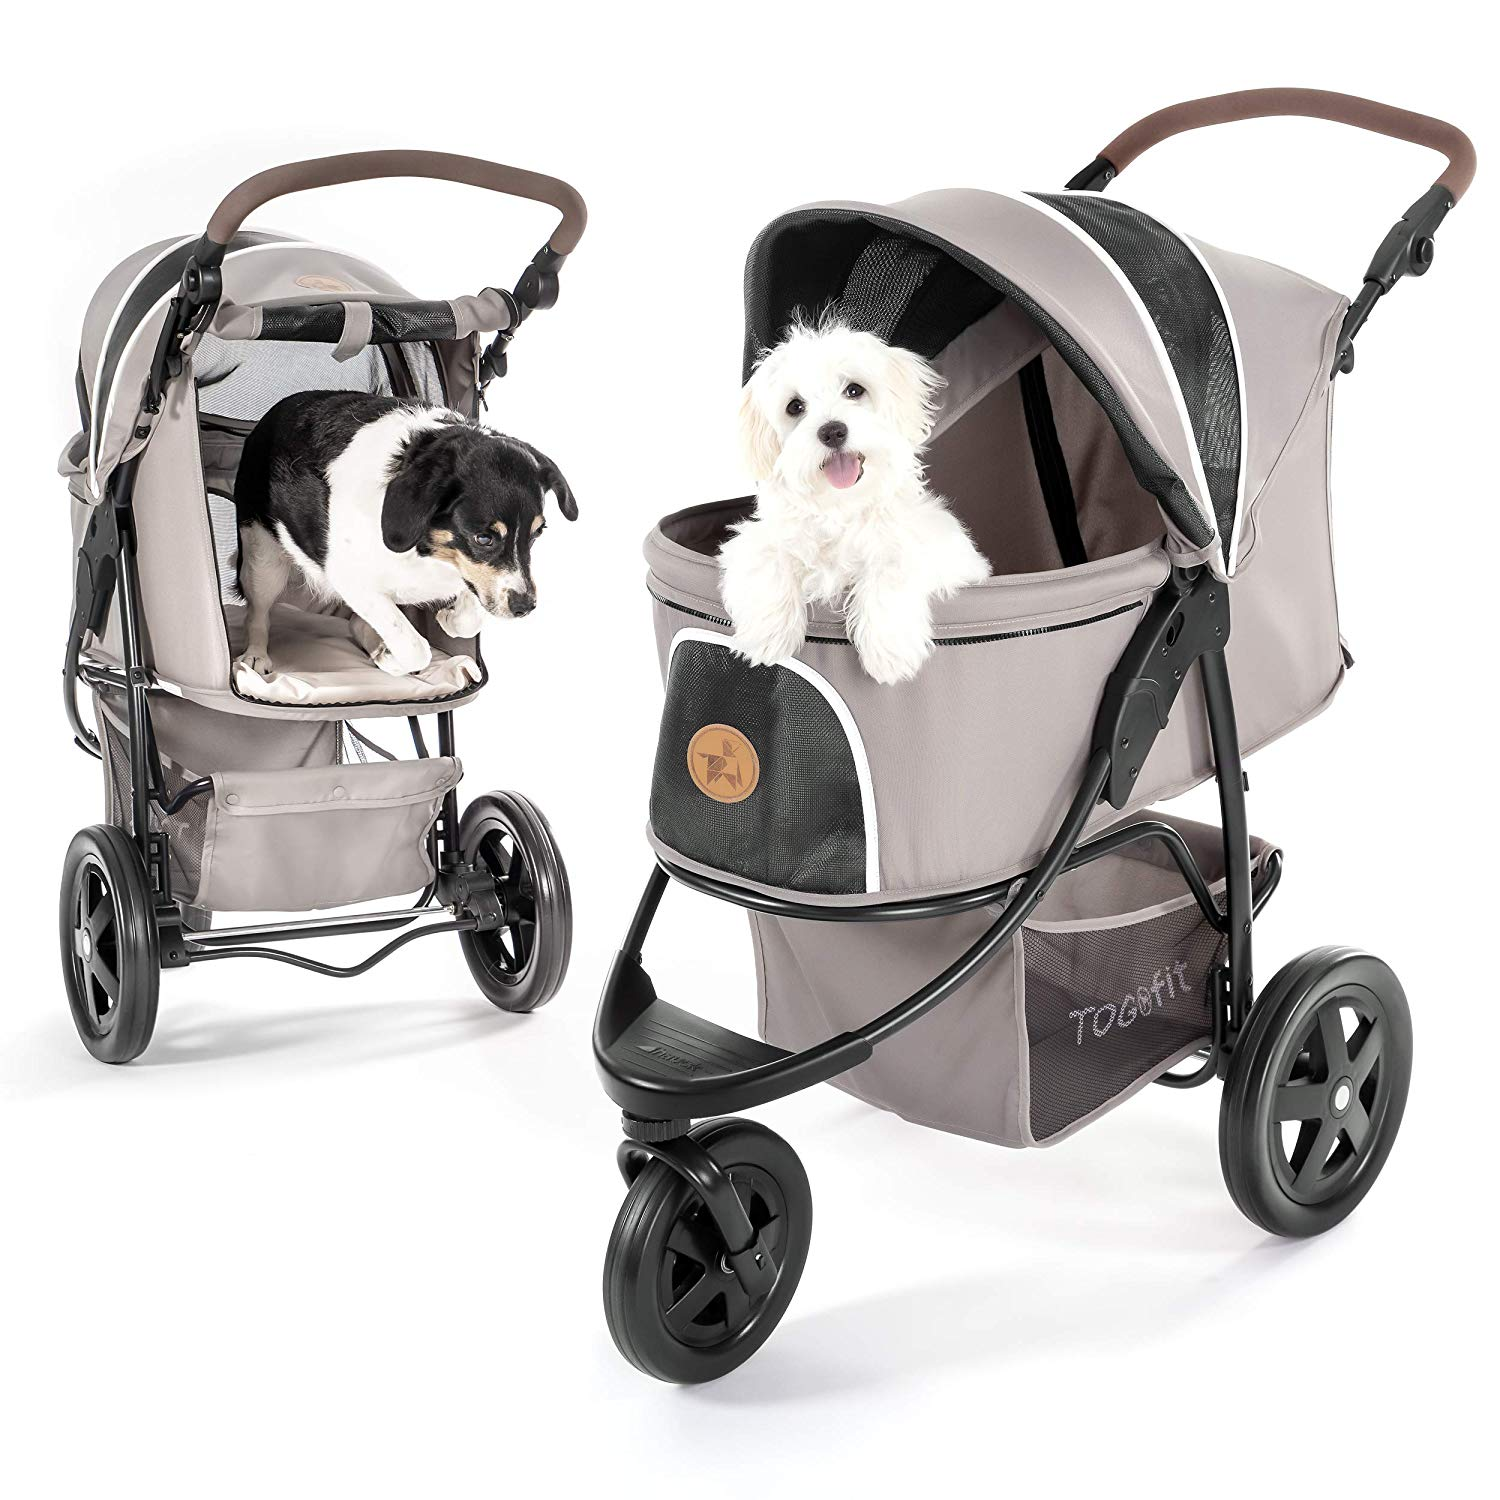 TOGfit Pet Roadster - Luxury Pet Stroller for Puppy